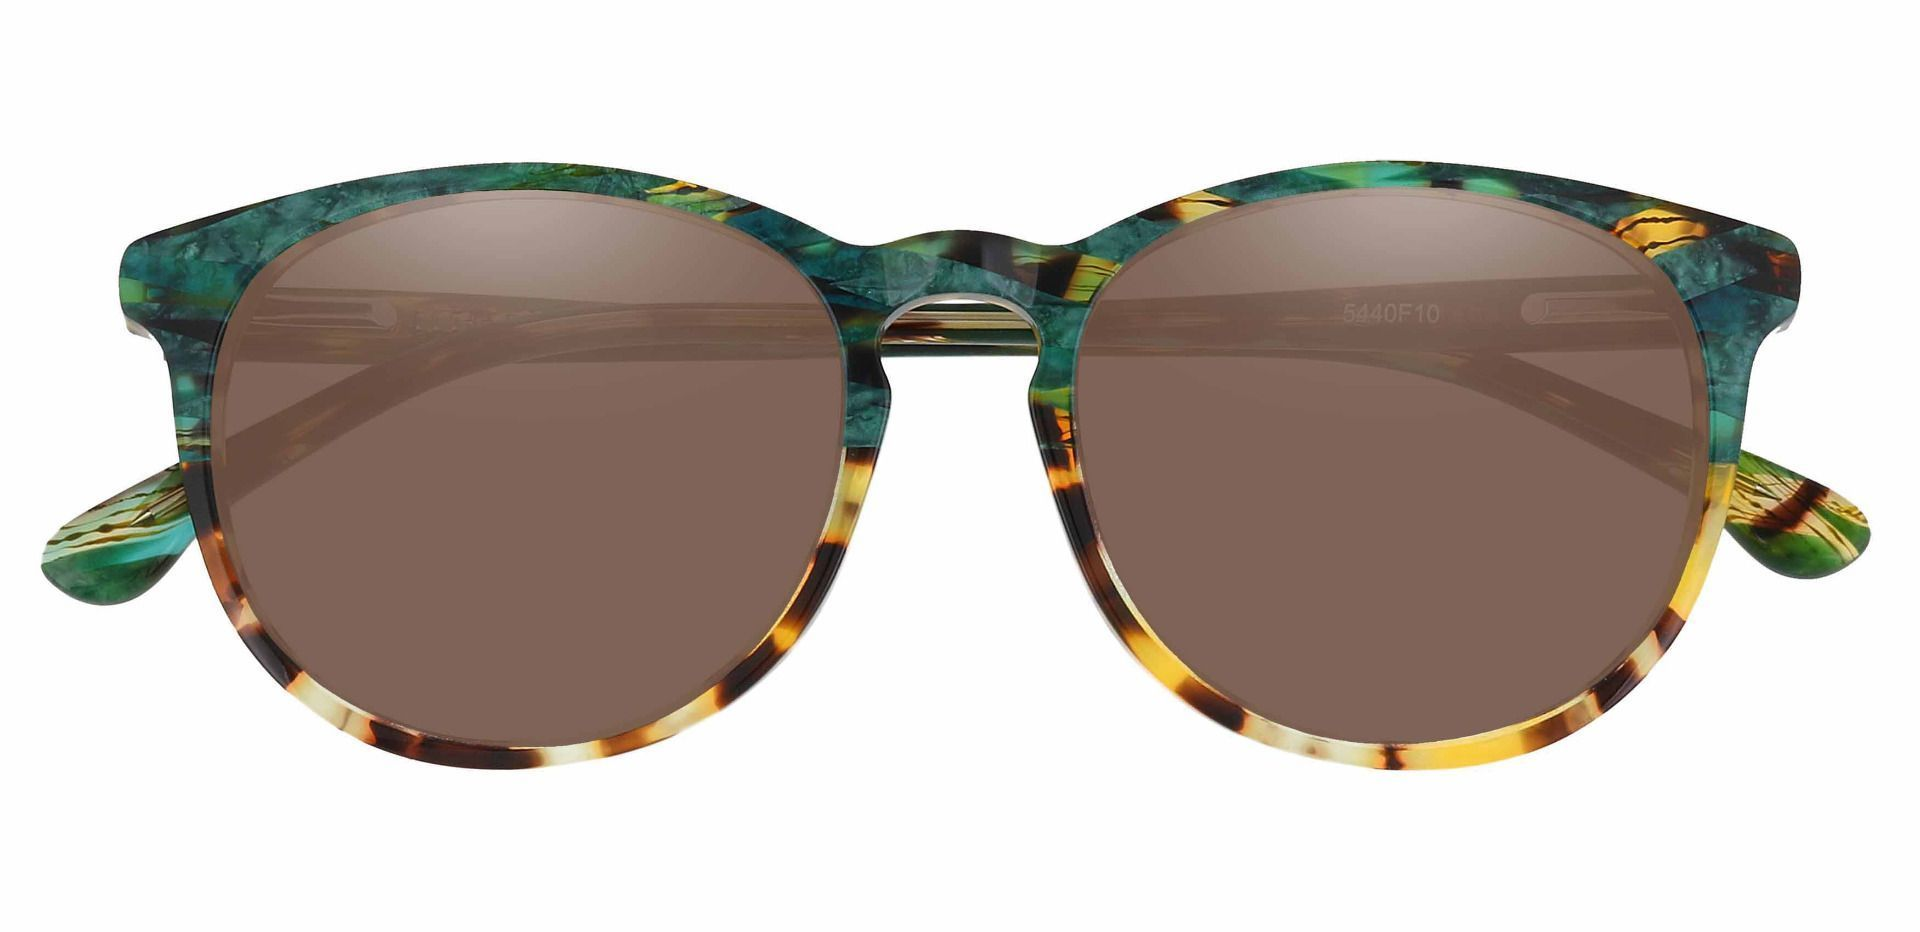 Carriage Round Non-Rx Sunglasses - Multi Color Frame With Brown Lenses